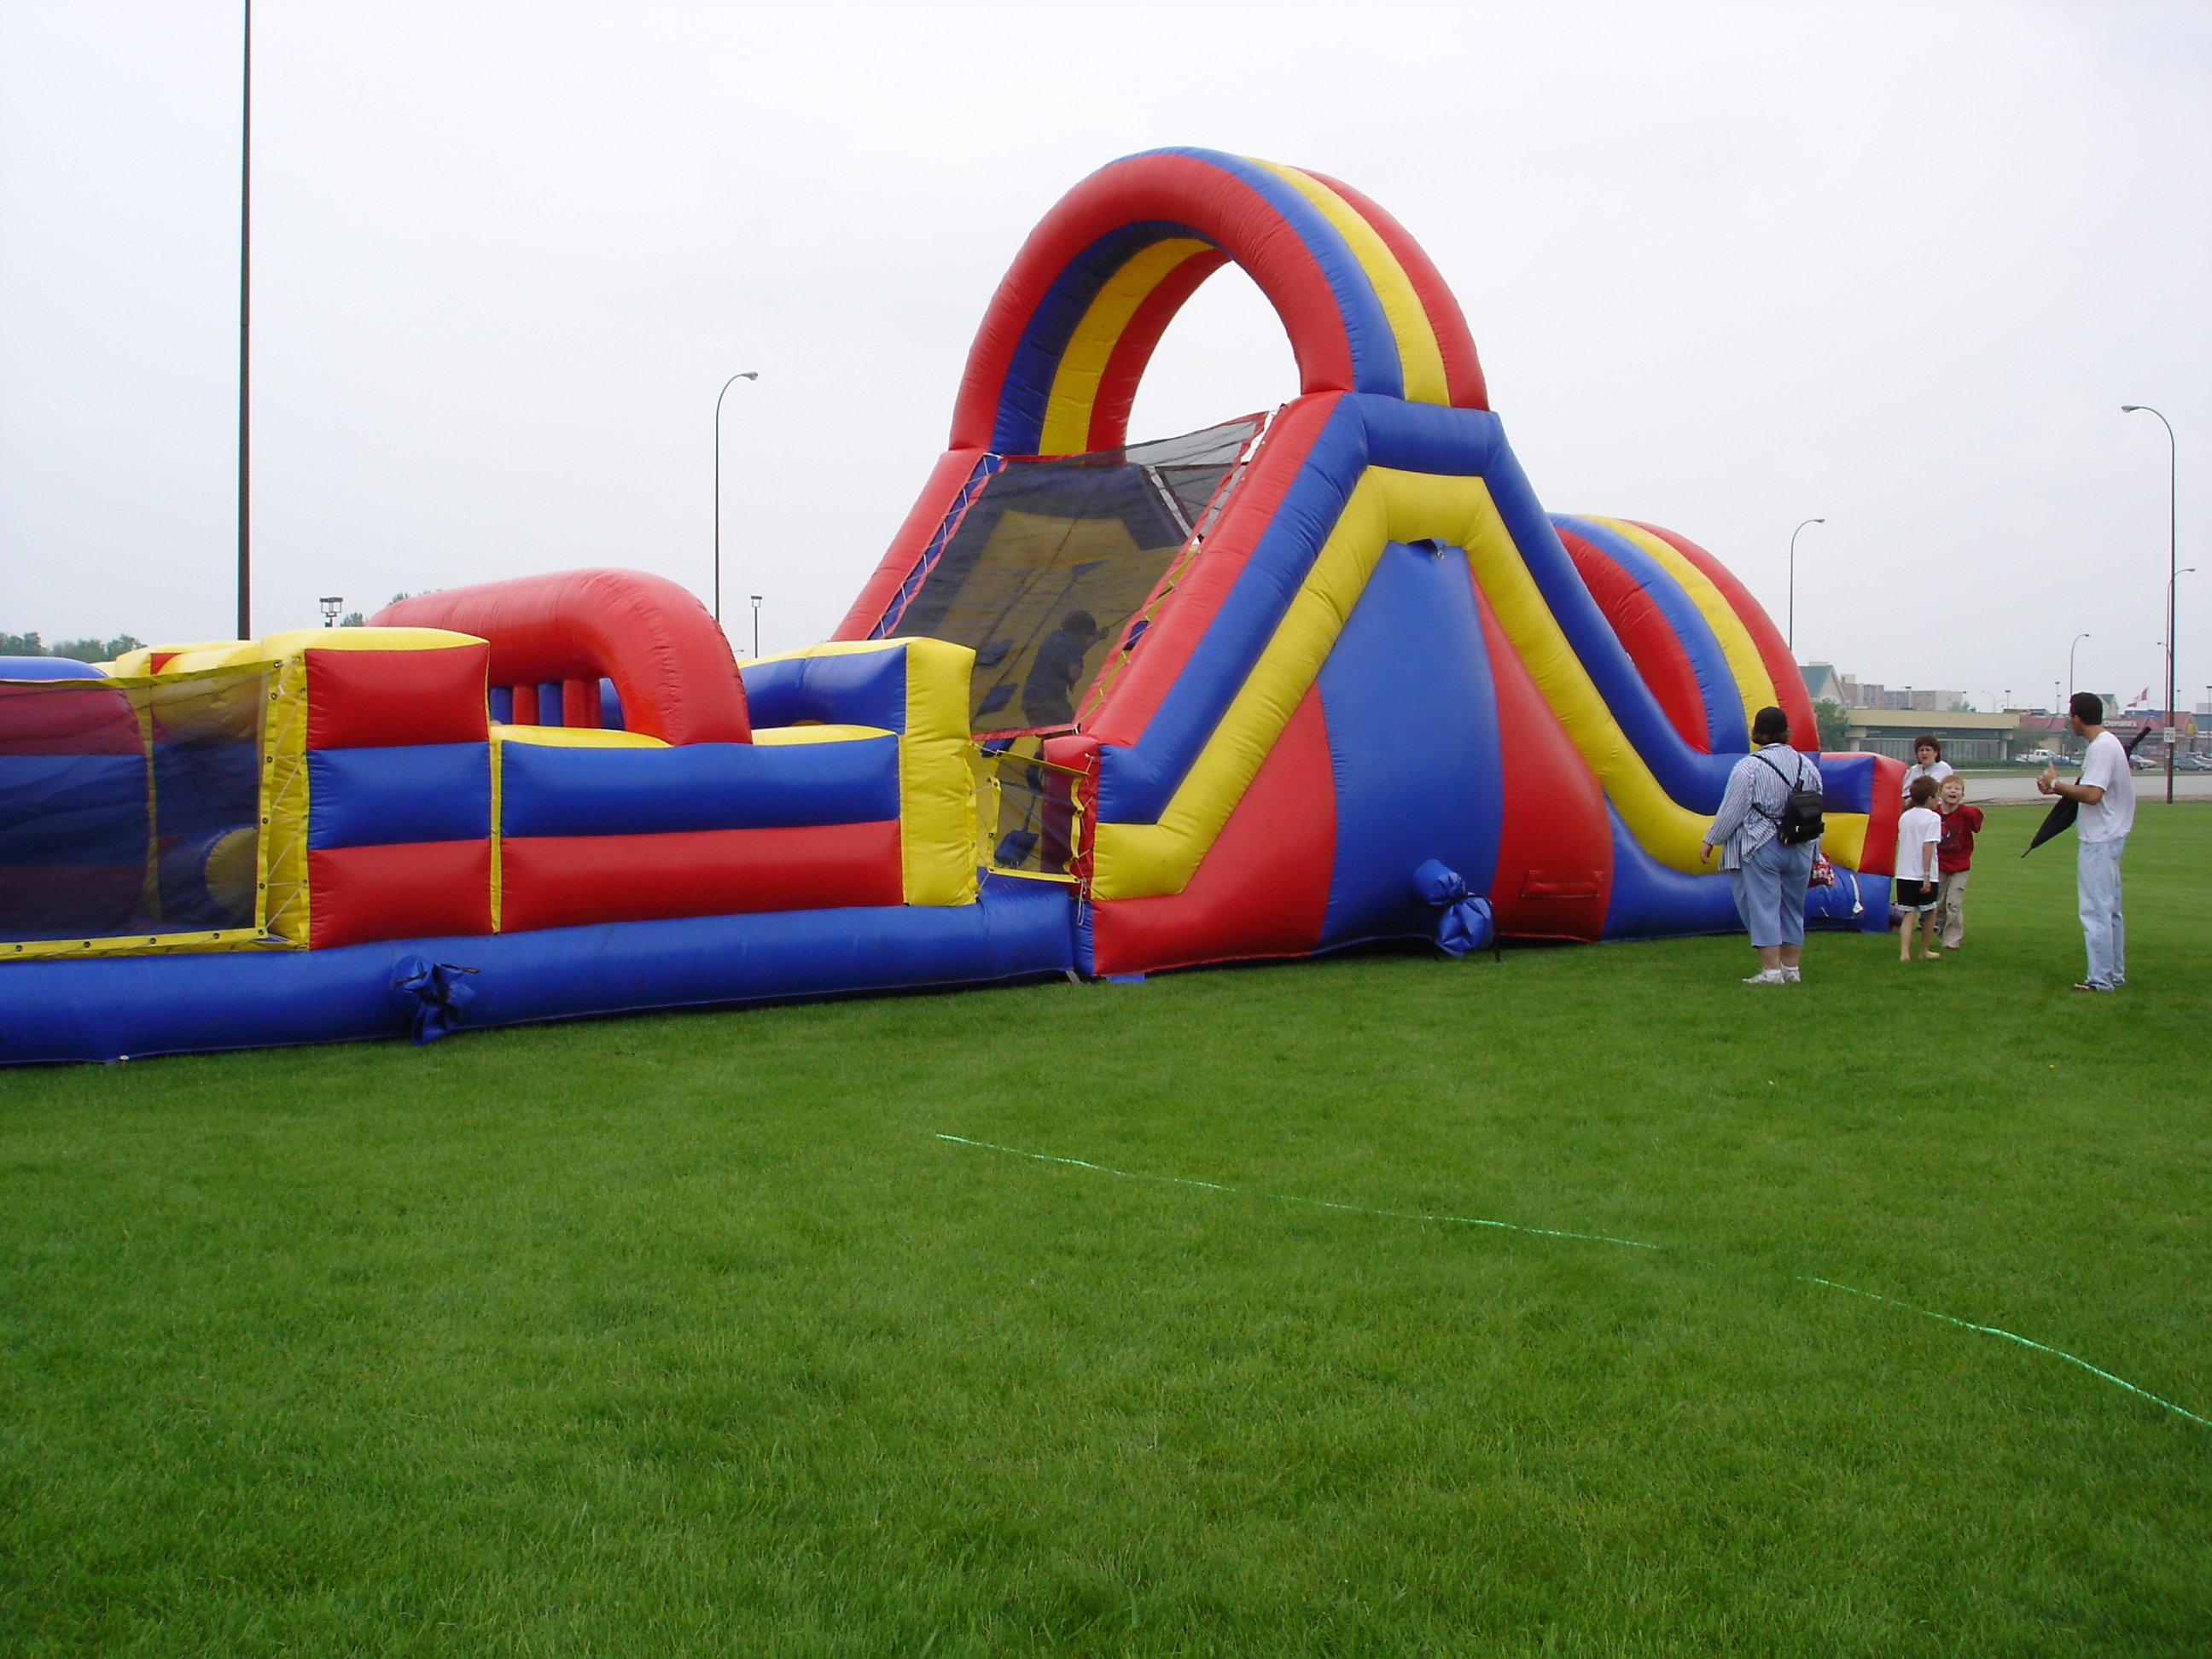 67 ft. Obstacle Course